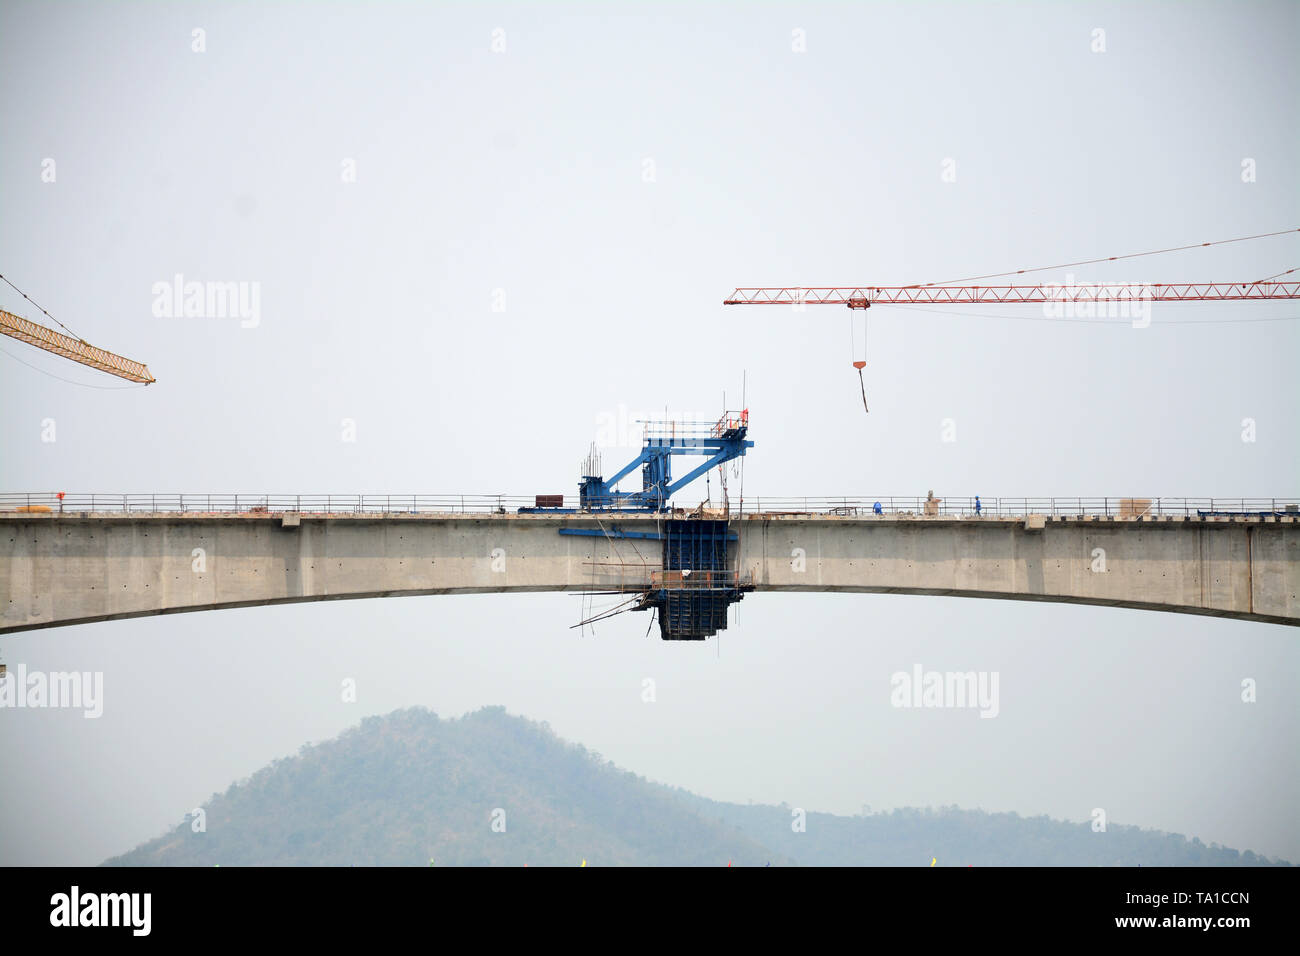 (190521) -- LAOS, May 21, 2019 (Xinhua) -- Photo taken on May 21, 2019 shows the Luang Prabang cross-Mekong River railway bridge in northern Laos. The first bridge span of the China-Laos railway has been built over the Mekong River in northern Laos, the Laos-China Railway Co., Ltd., which is in charge of the construction and operation of the railway said on Tuesday. Accordingly, the China Railway No. 8 Engineering Group (CREC-8) has completed the closure of the first span of the Luang Prabang cross-Mekong River railway bridge on Saturday. It is also the first completed bridge span of two cross - Stock Image